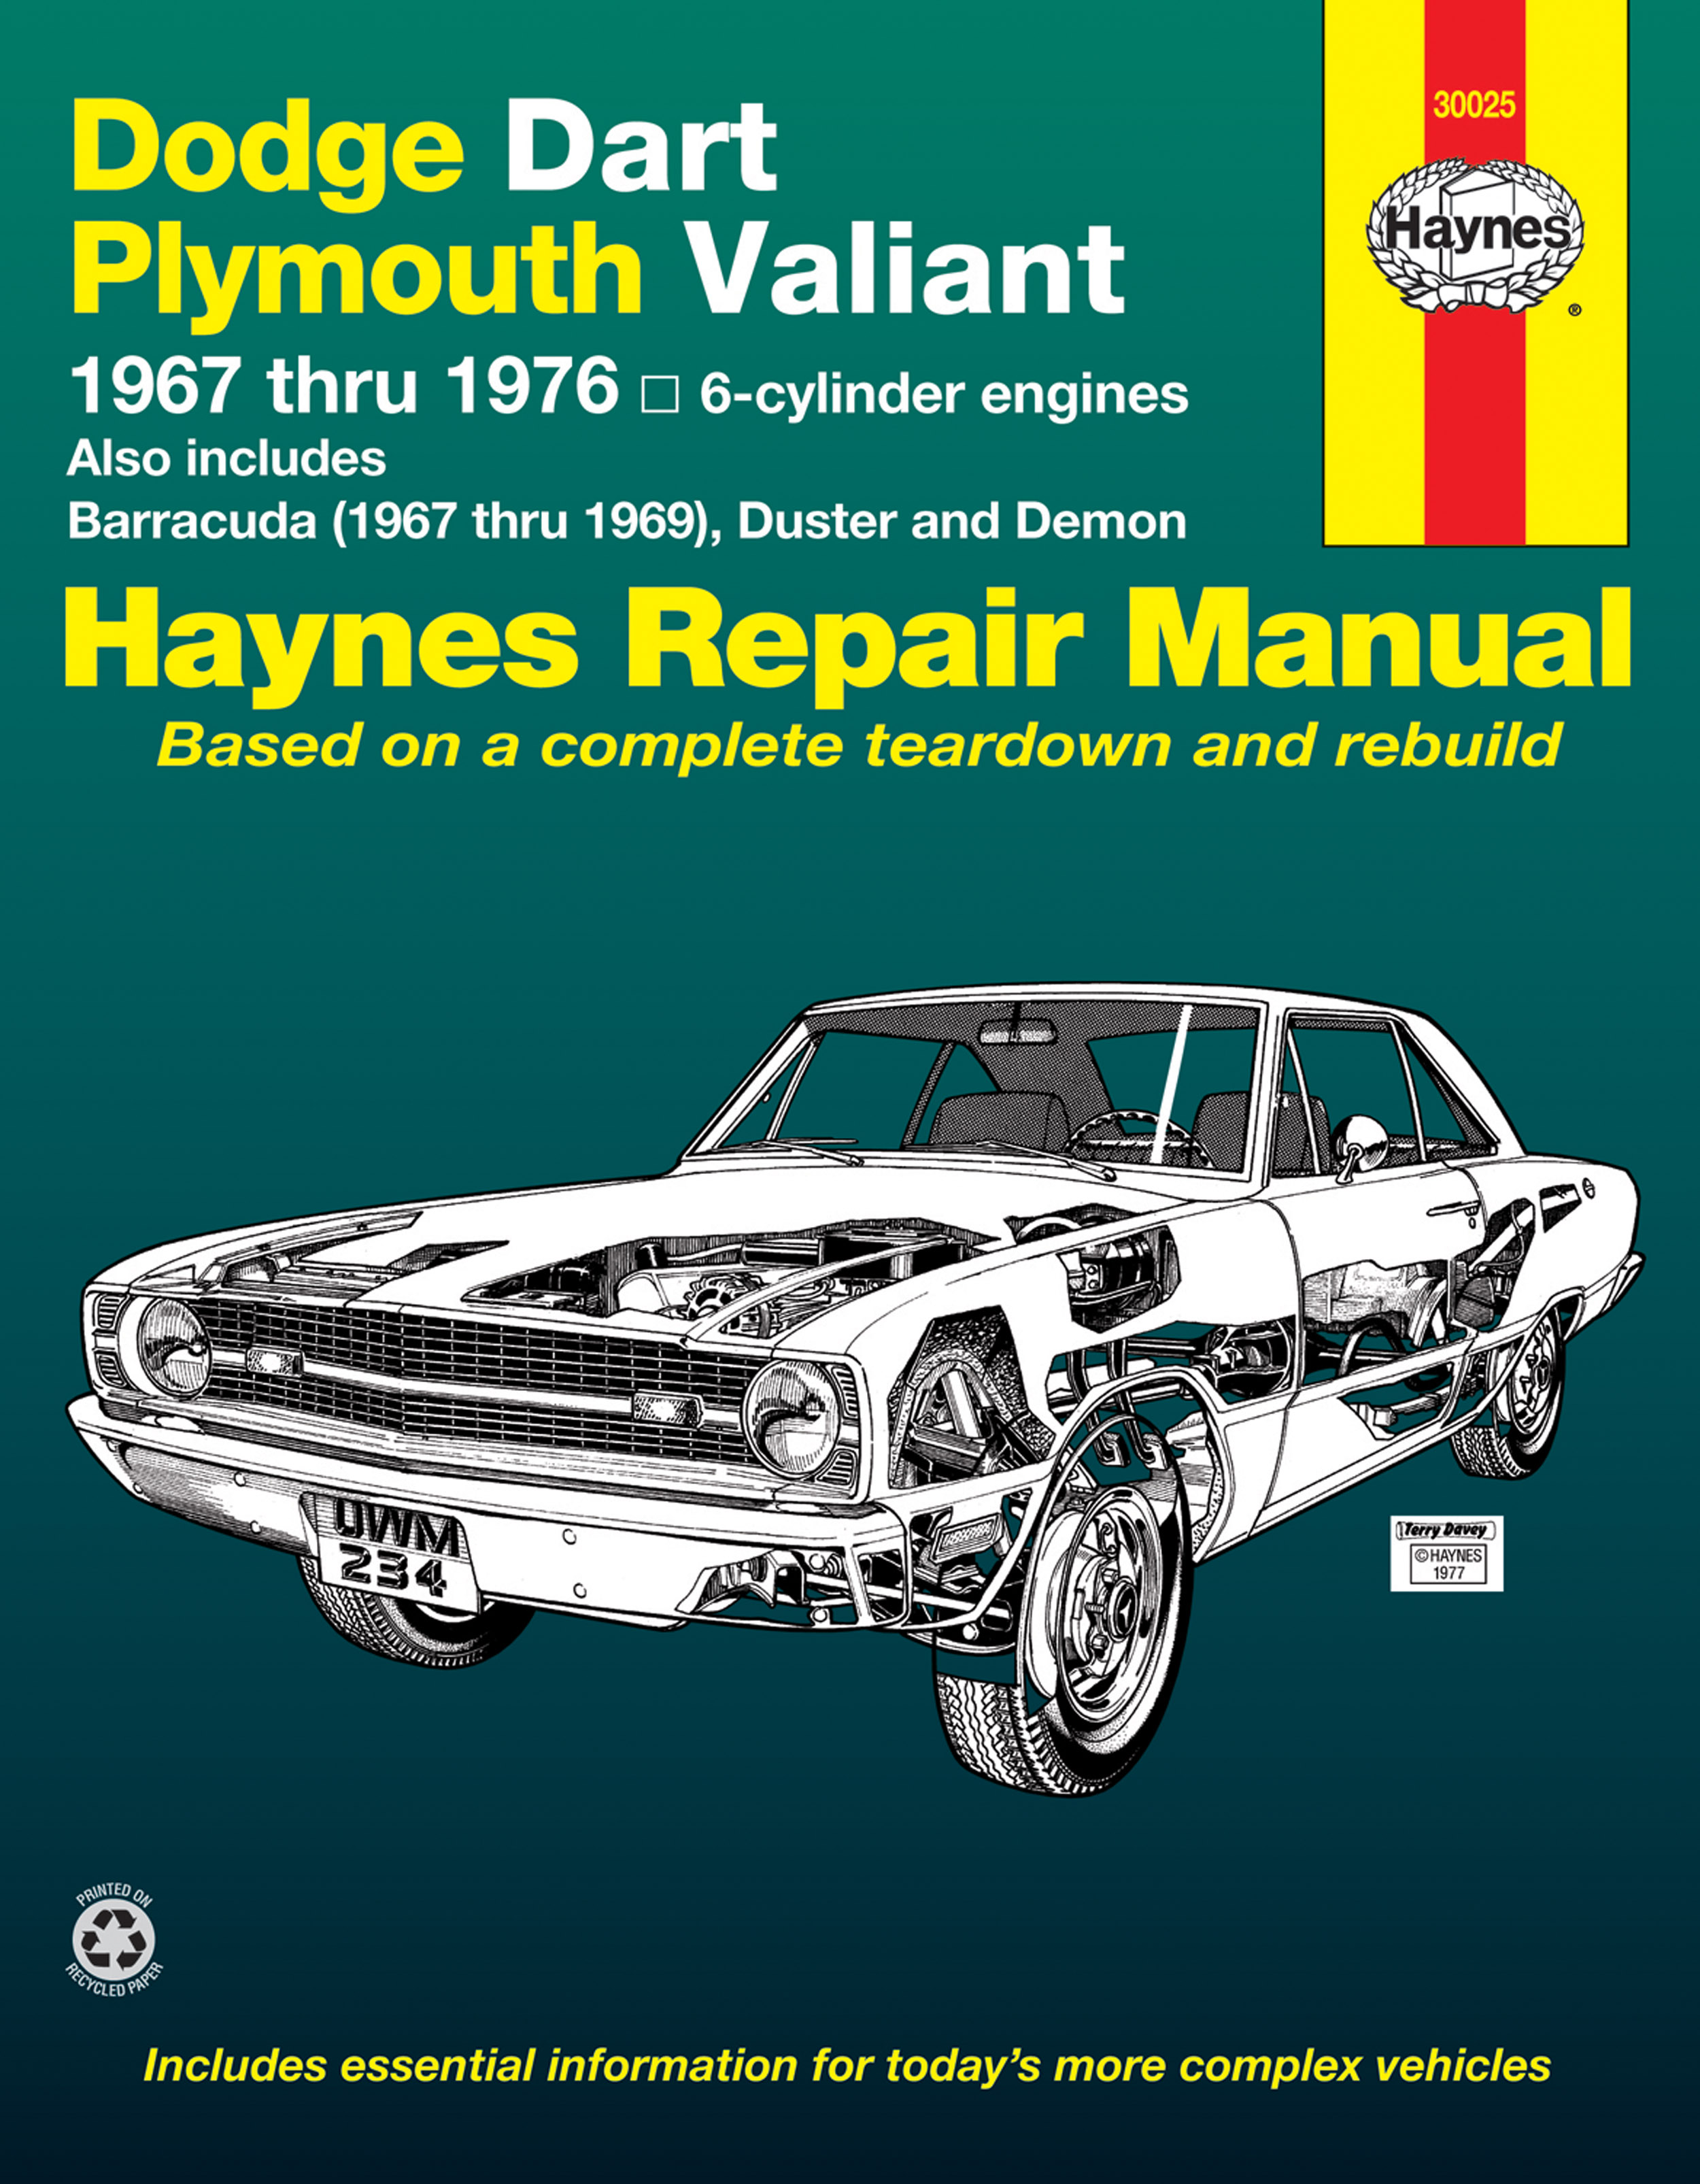 dodge dart plymouth valiant covering dodge dart demon plymouth rh haynes com 1969 dodge dart service manual 2015 dodge dart service manual